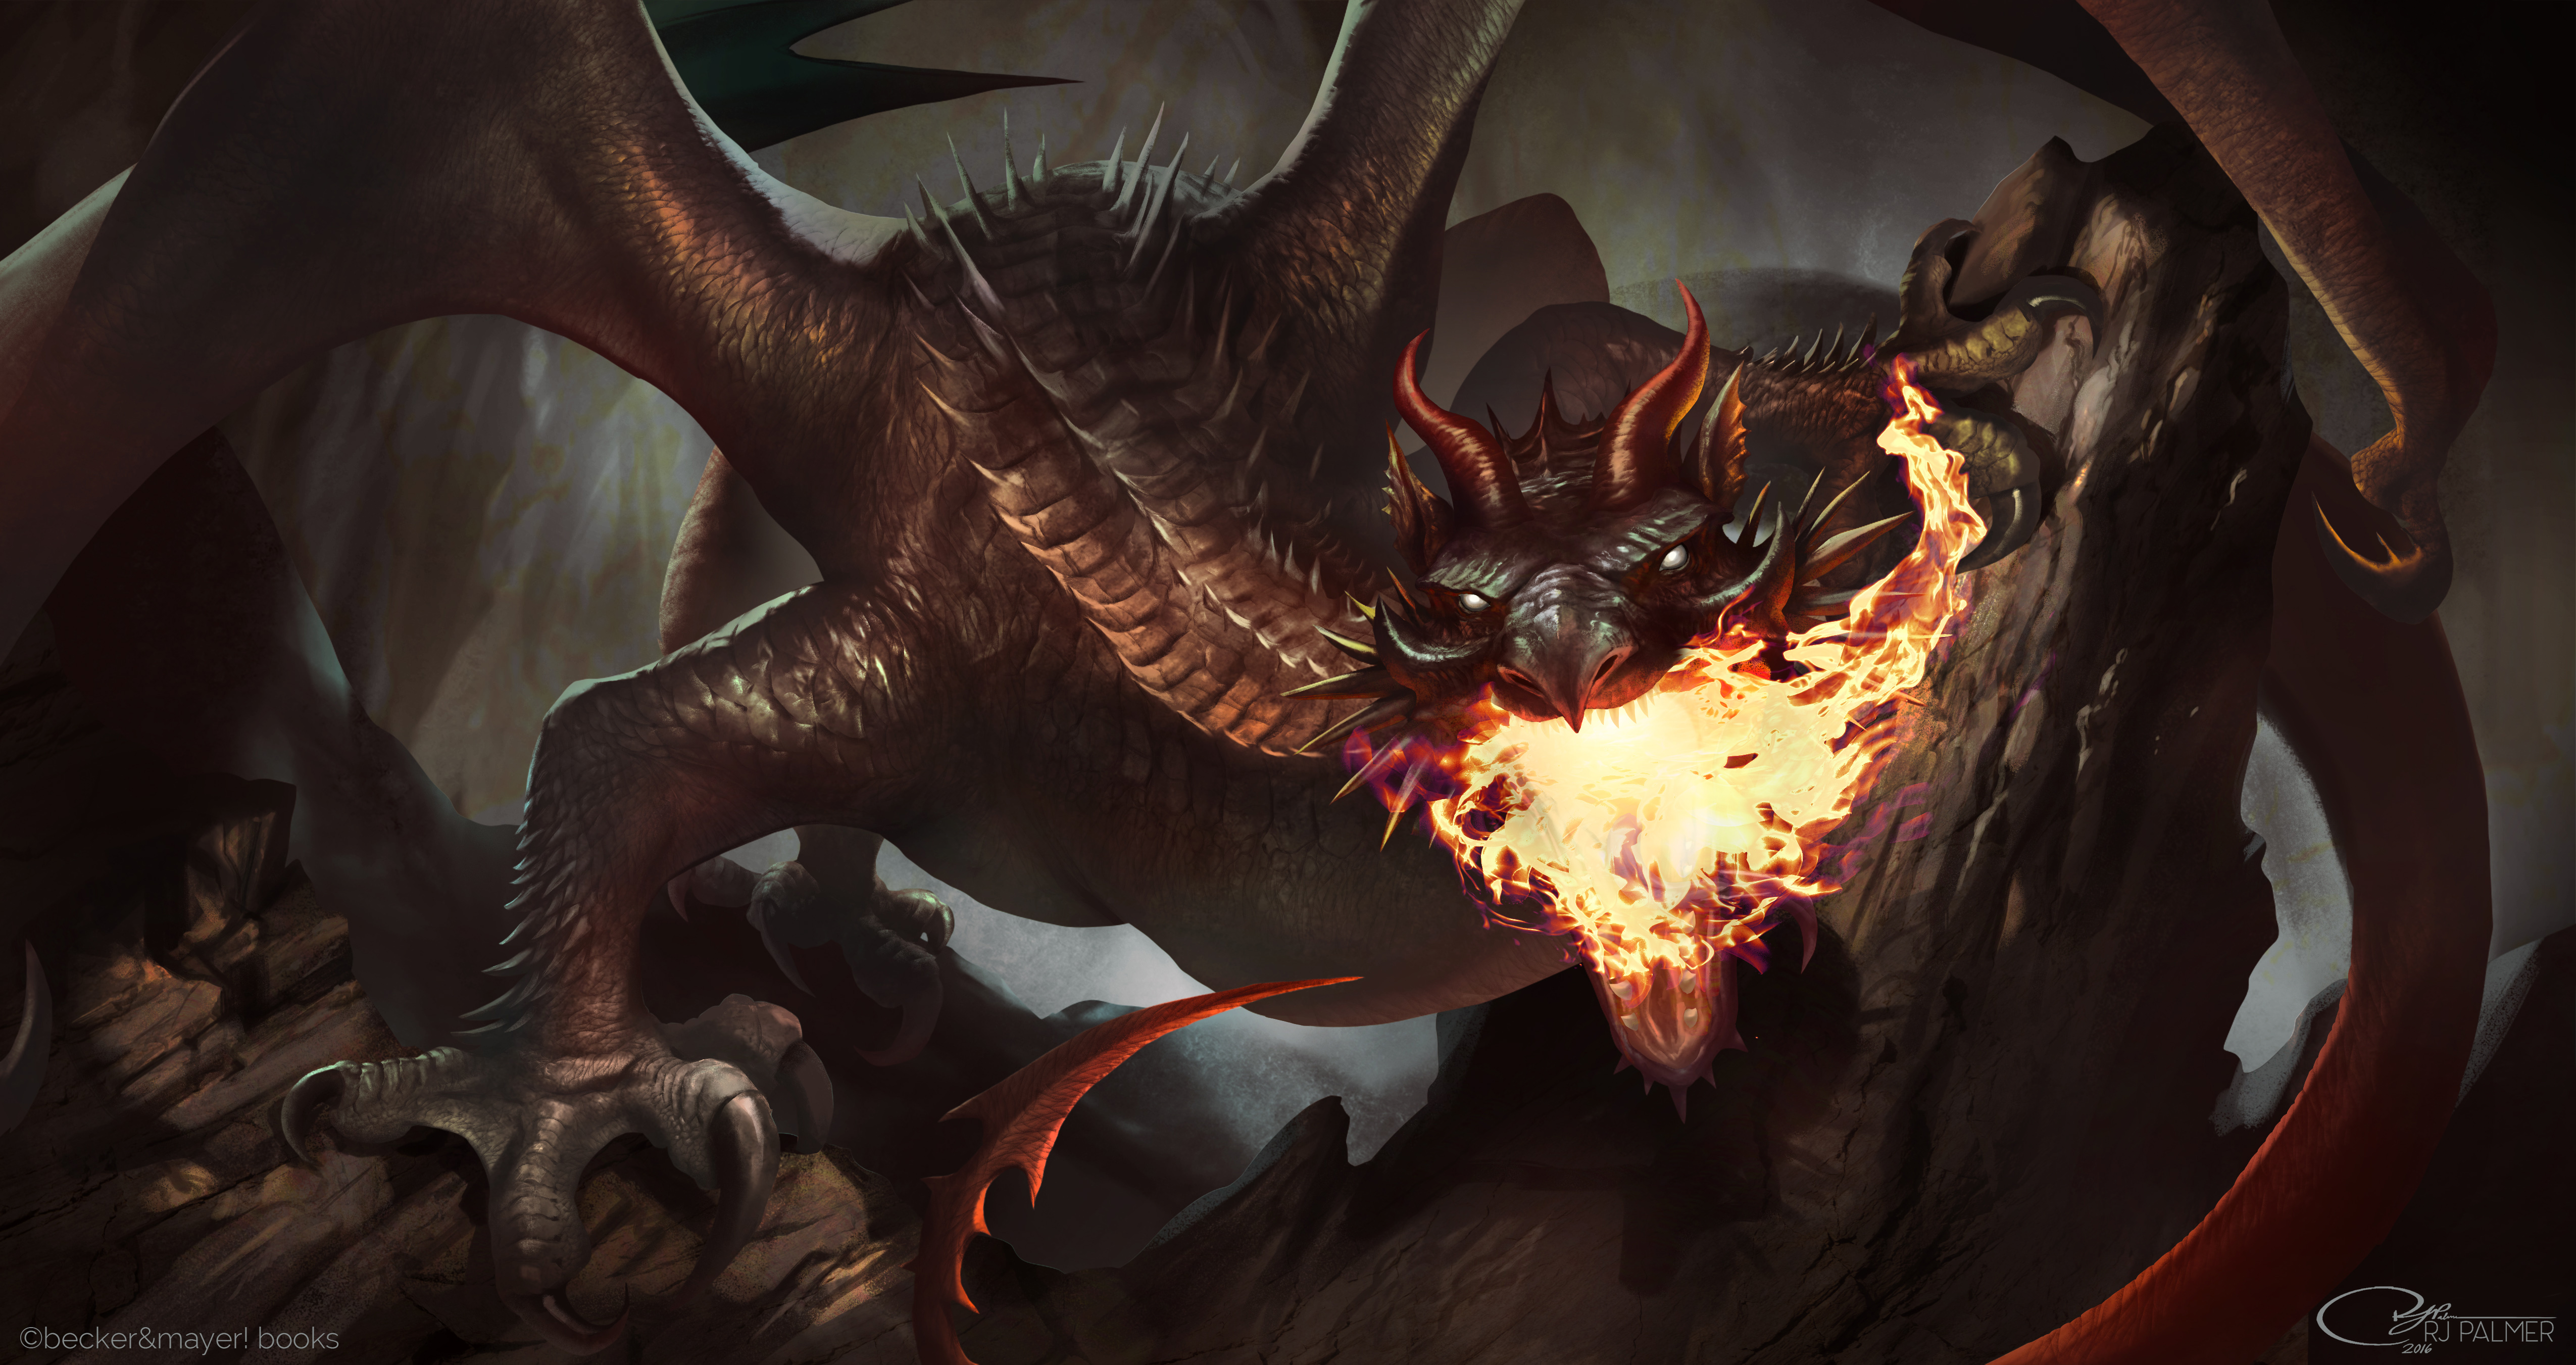 139 4k ultra hd dragon wallpapers | background images - wallpaper abyss